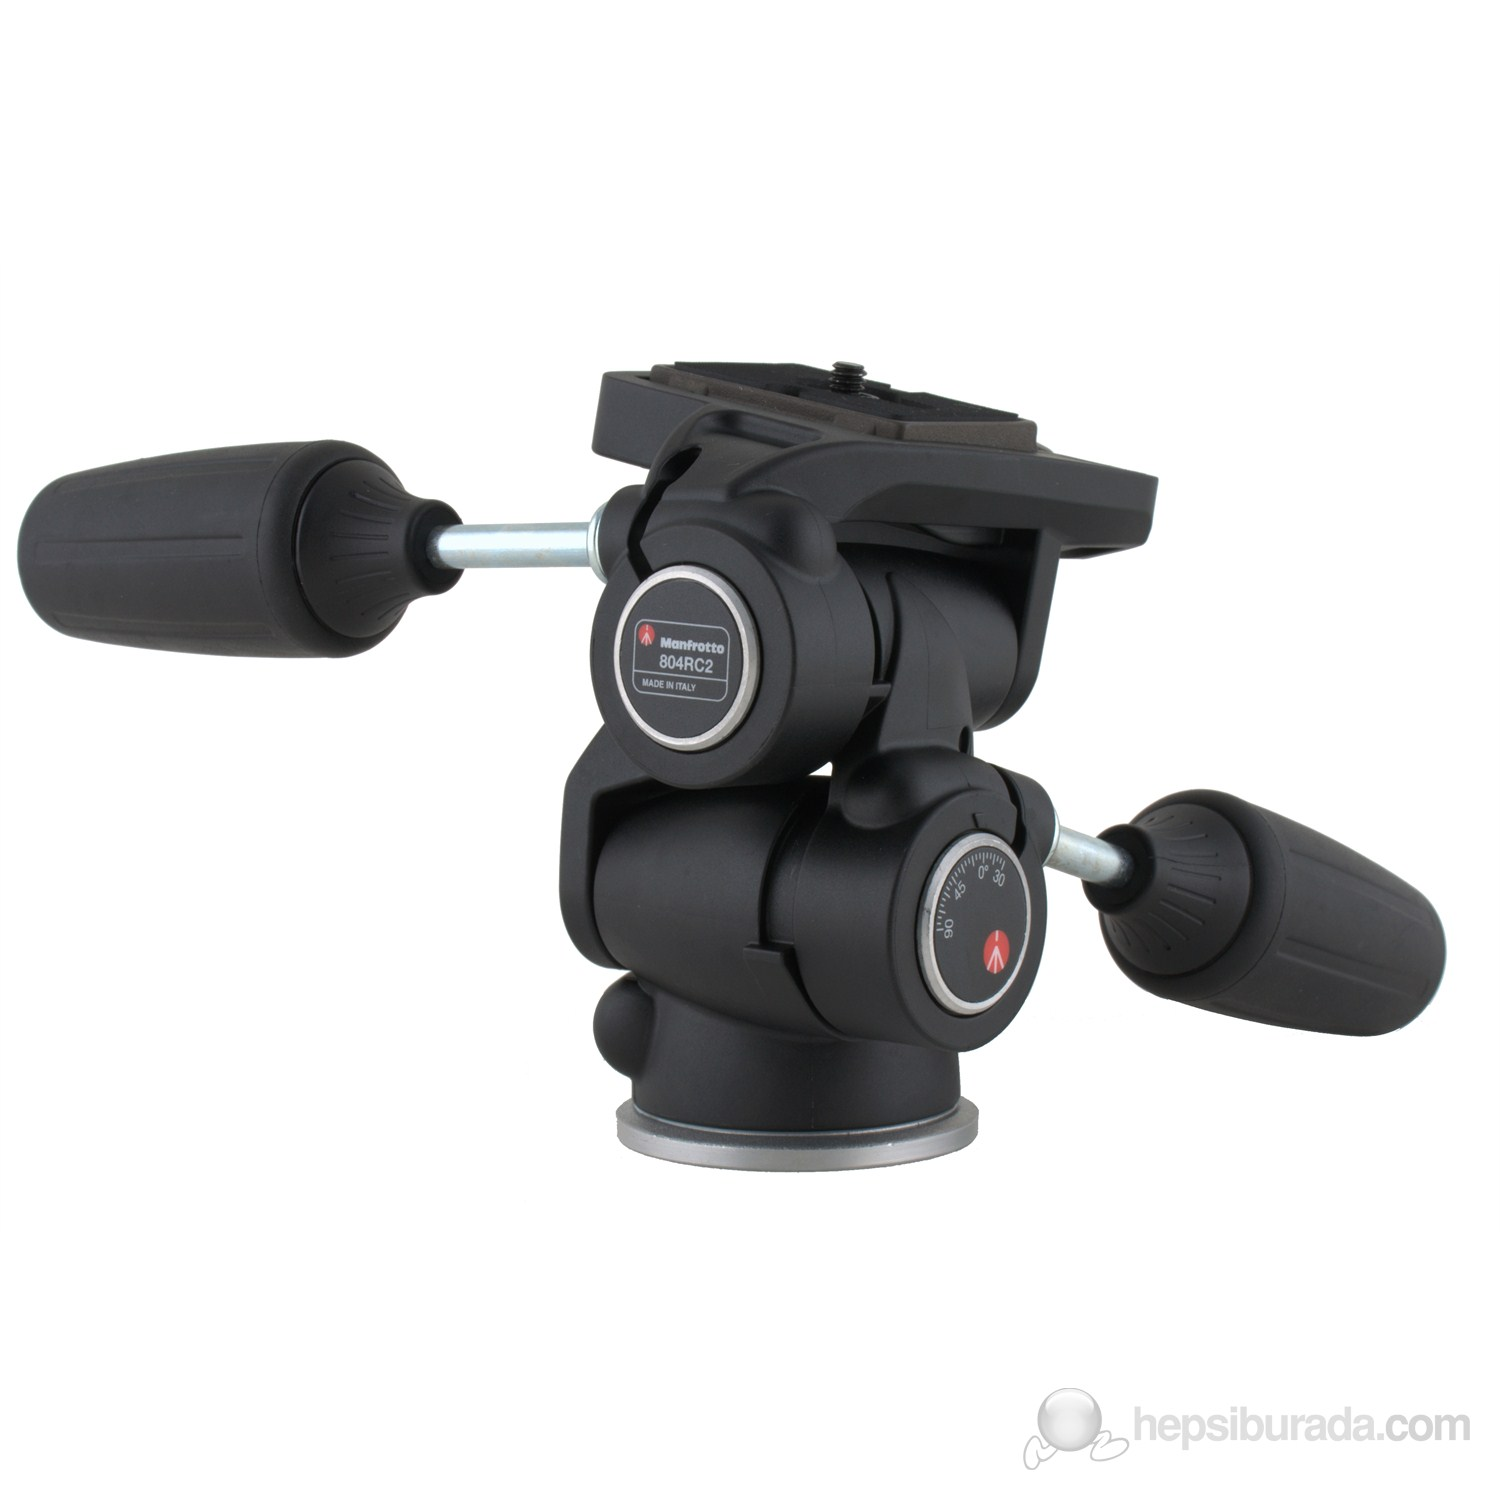 Manfrotto 804 RC2 Basic Head Black